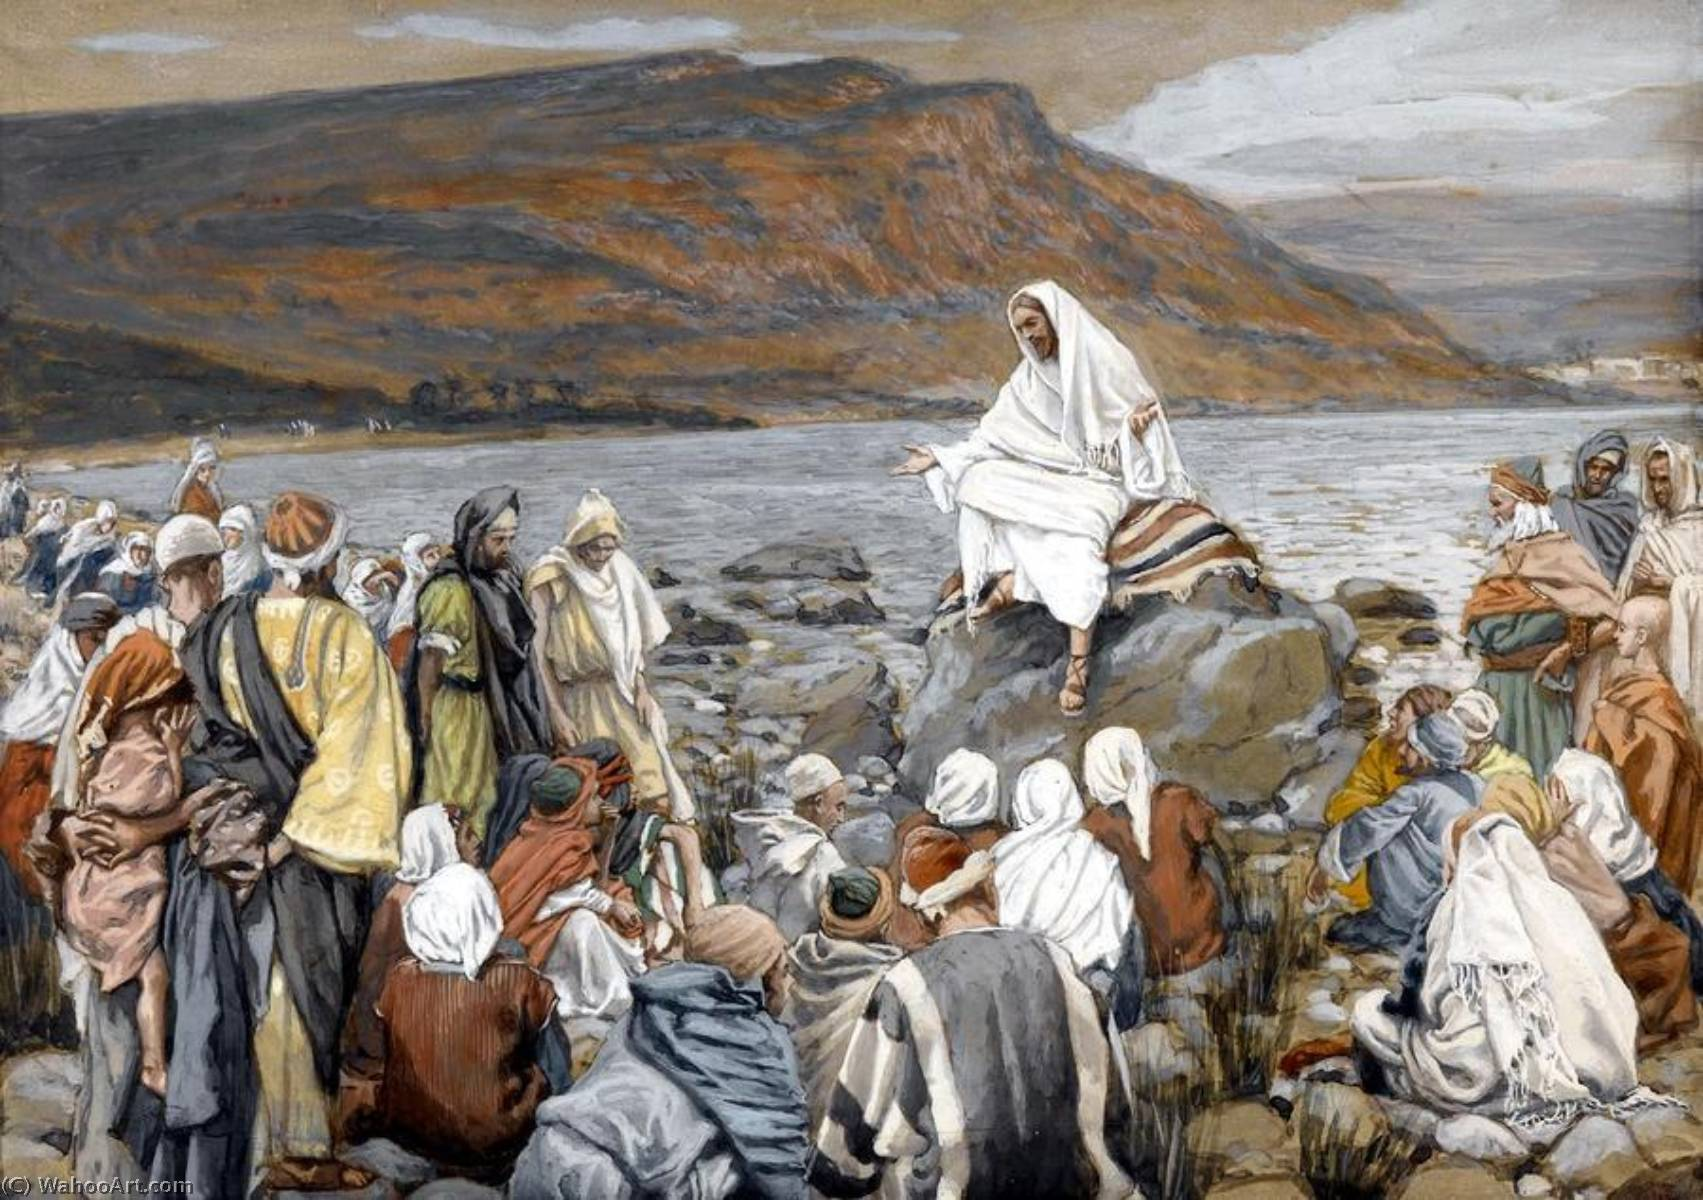 James-Jaques-Joseph-Tissot-Jesus-Teaches-the-People-by-the-Sea